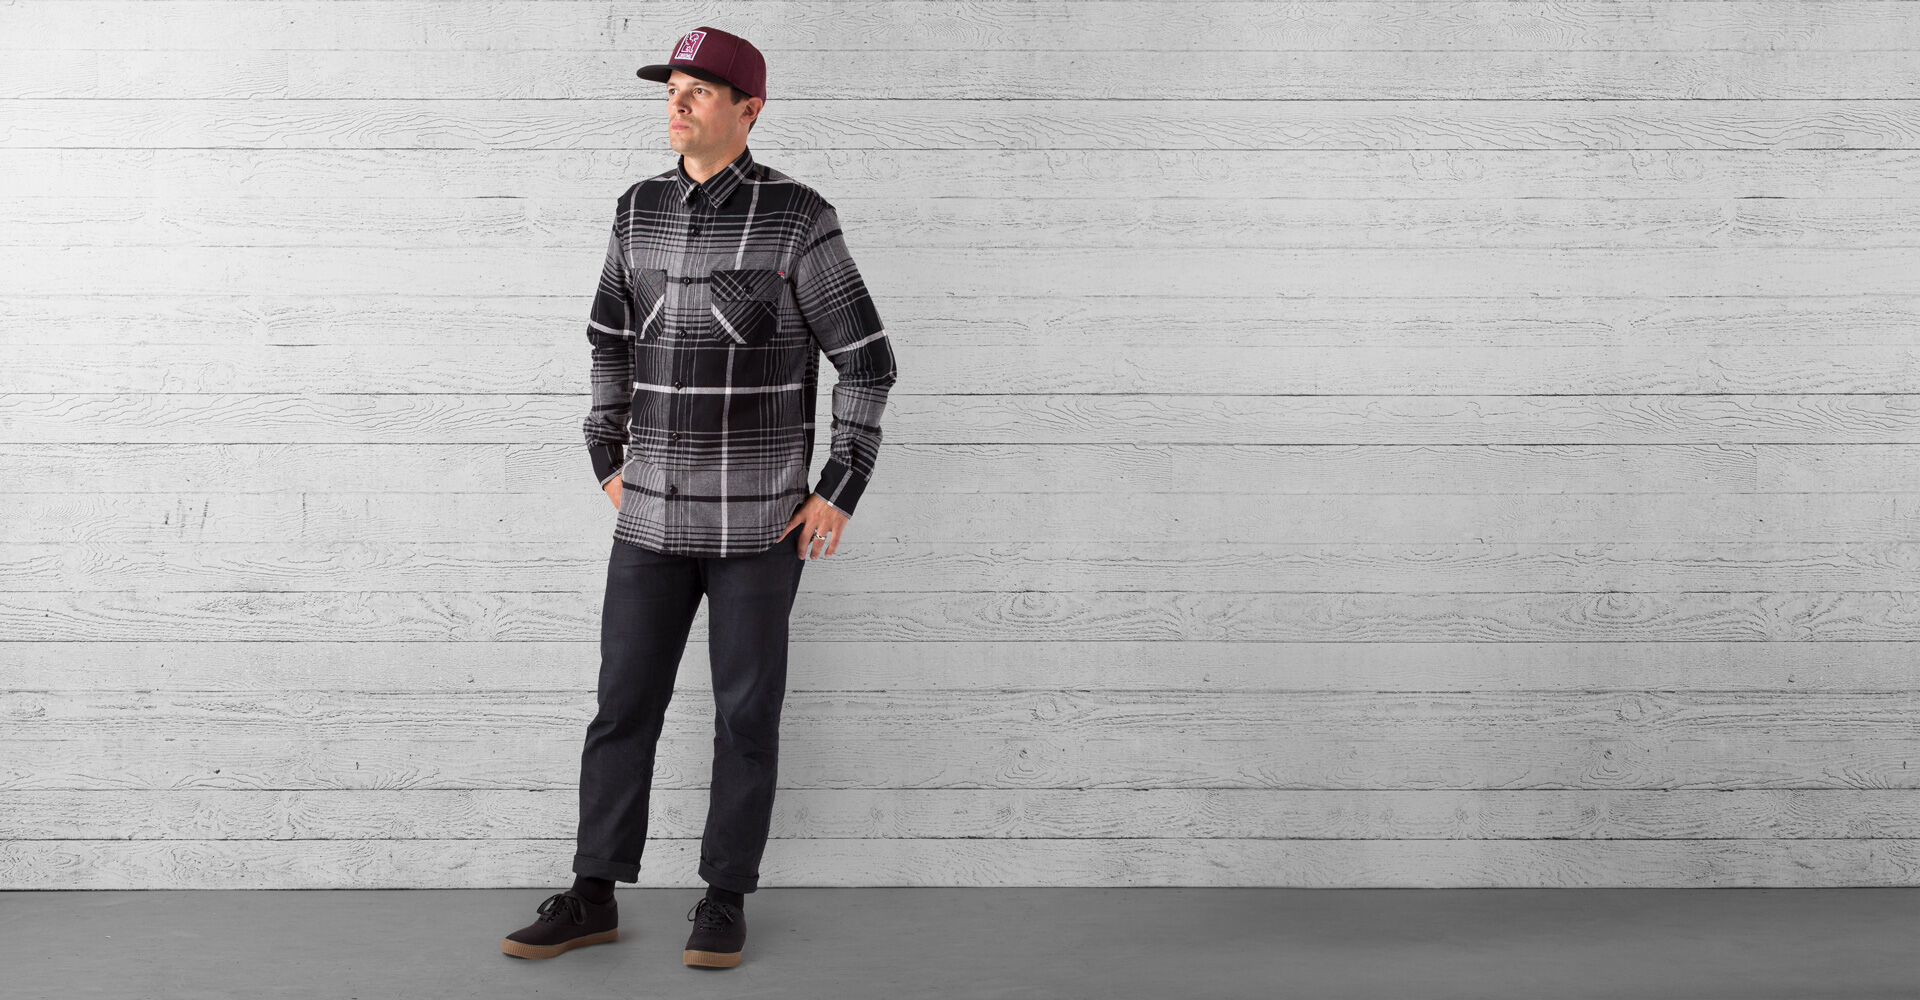 Woven Workshirt in Charcoal / Black Plaid - wide view.